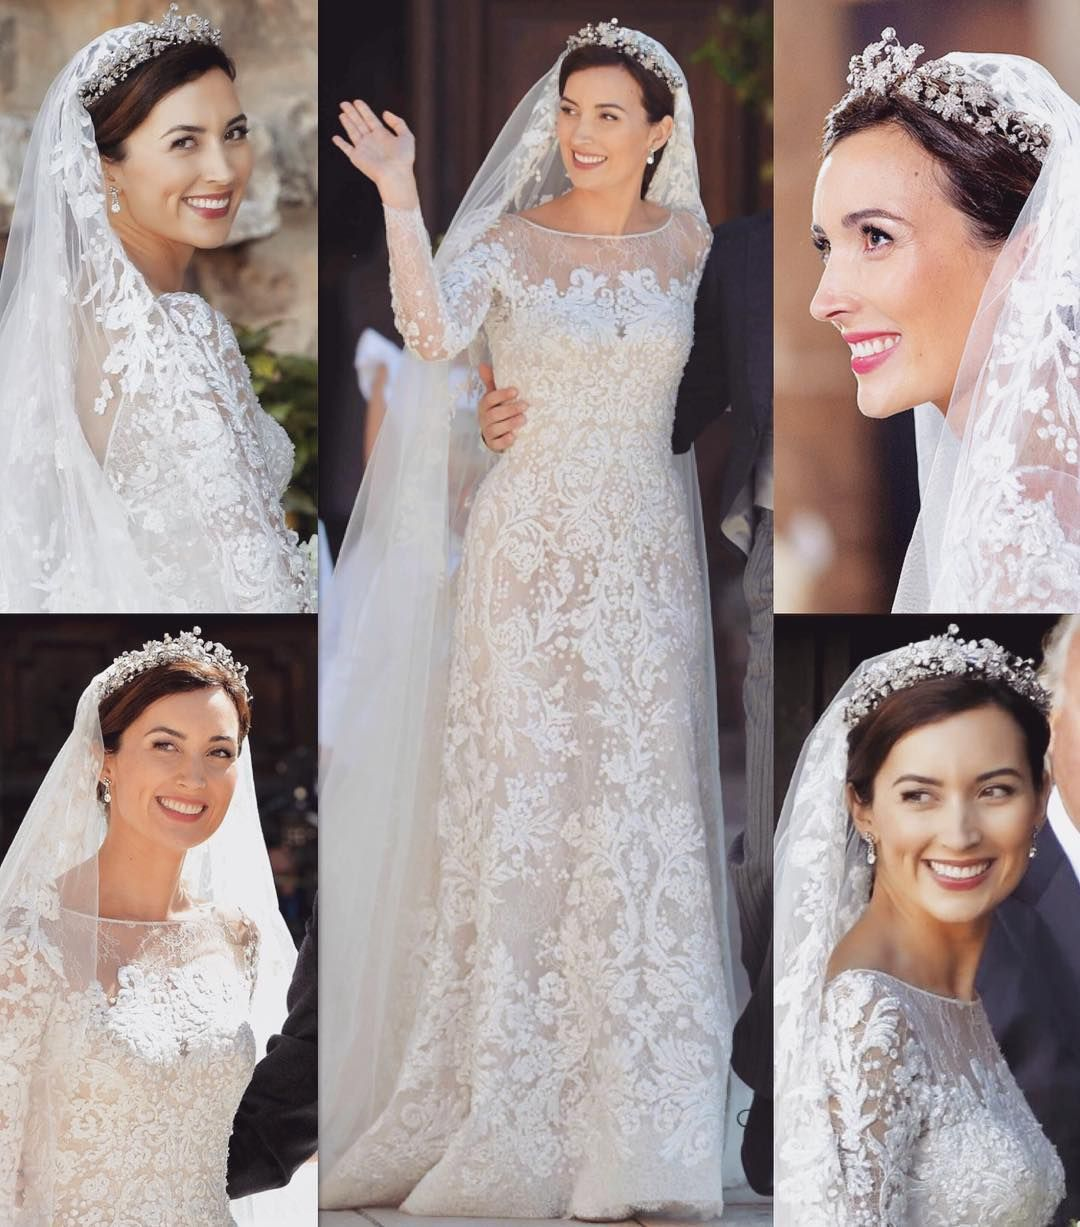 Do You Like This Wedding Dress This Gorgeous Wedding Dress Is Worn By Princess Claire O Gorgeous Wedding Dress Wedding Dresses Wedding Dresses Romantic [ 1227 x 1080 Pixel ]